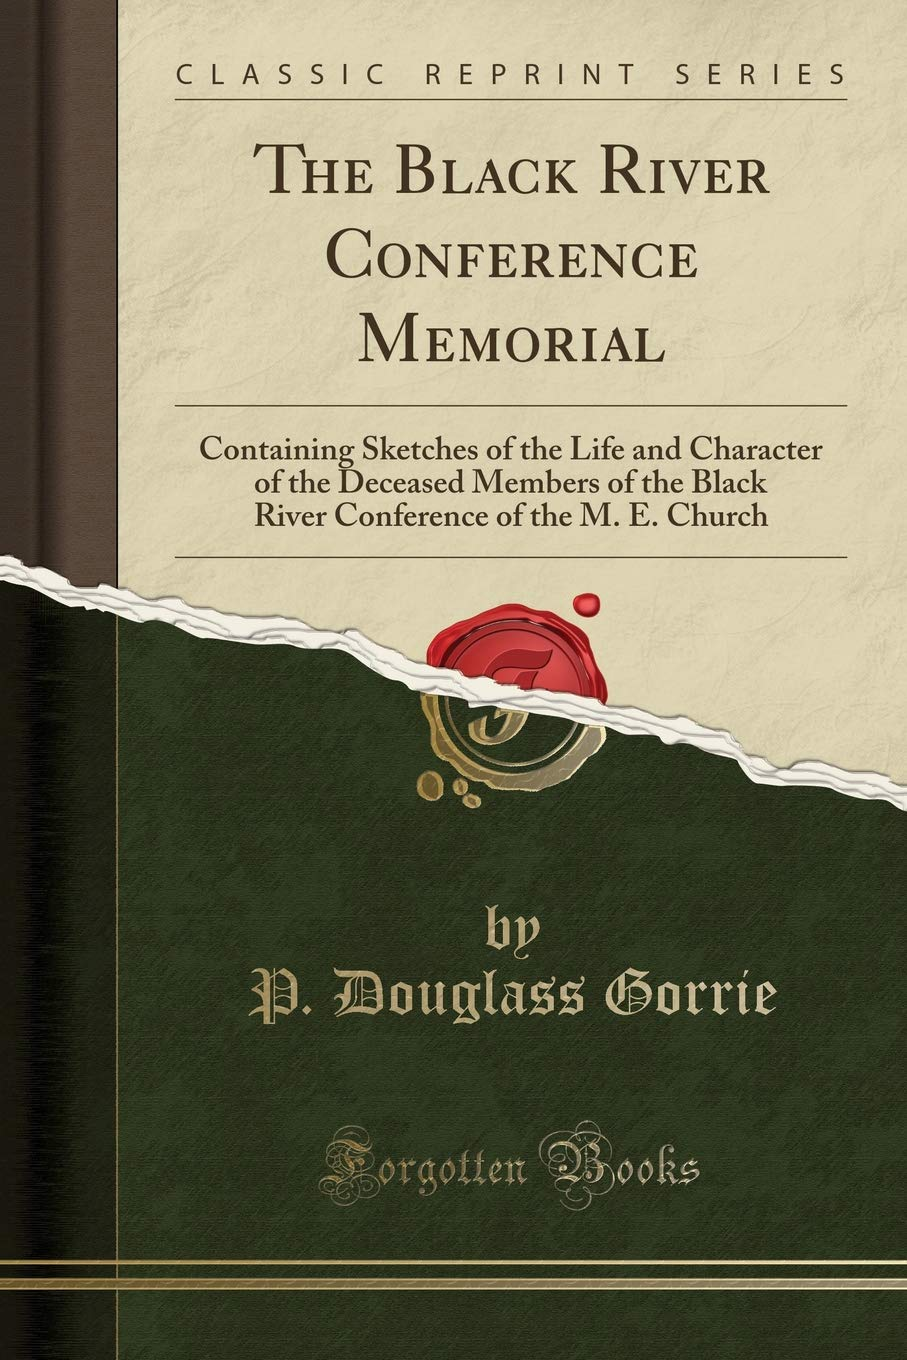 The Black River Conference Memorial: Containing Sketches of the Life and Character of the Deceased Members of the Black River Conference of the M. E. Church (Classic Reprint) pdf